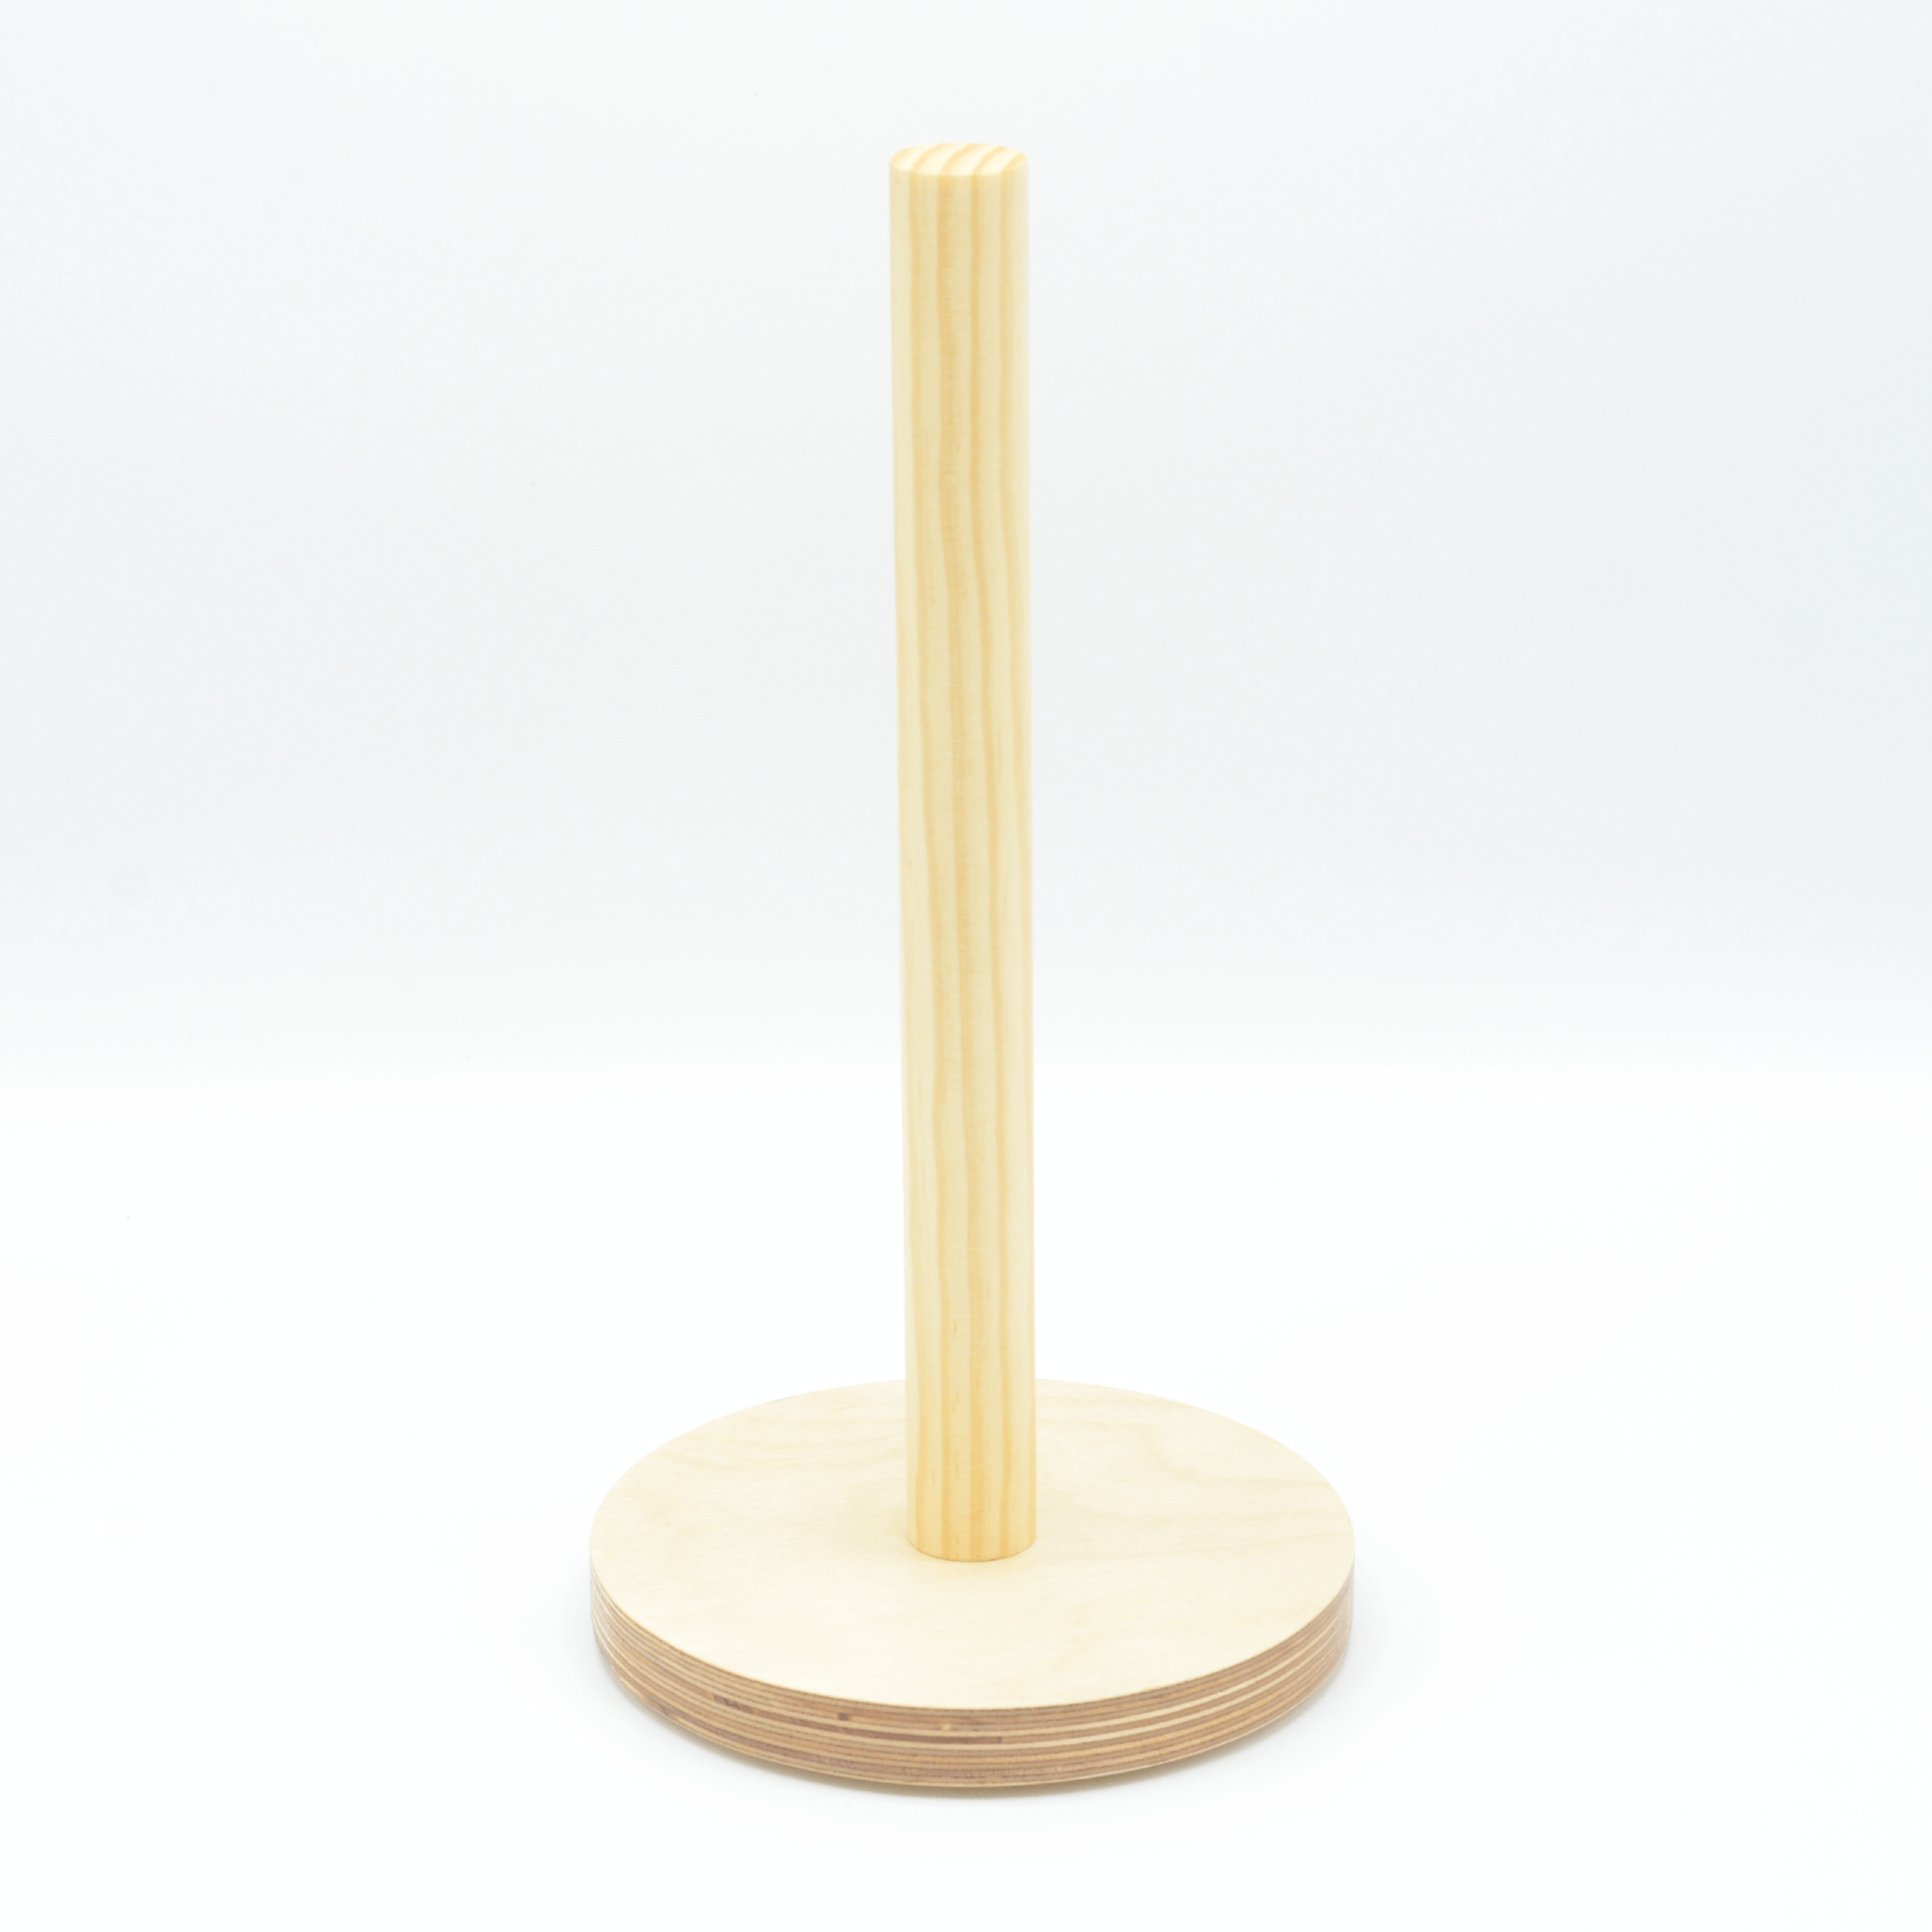 Wood Paper Towel Holder Made In Usa 4 The Greater Good